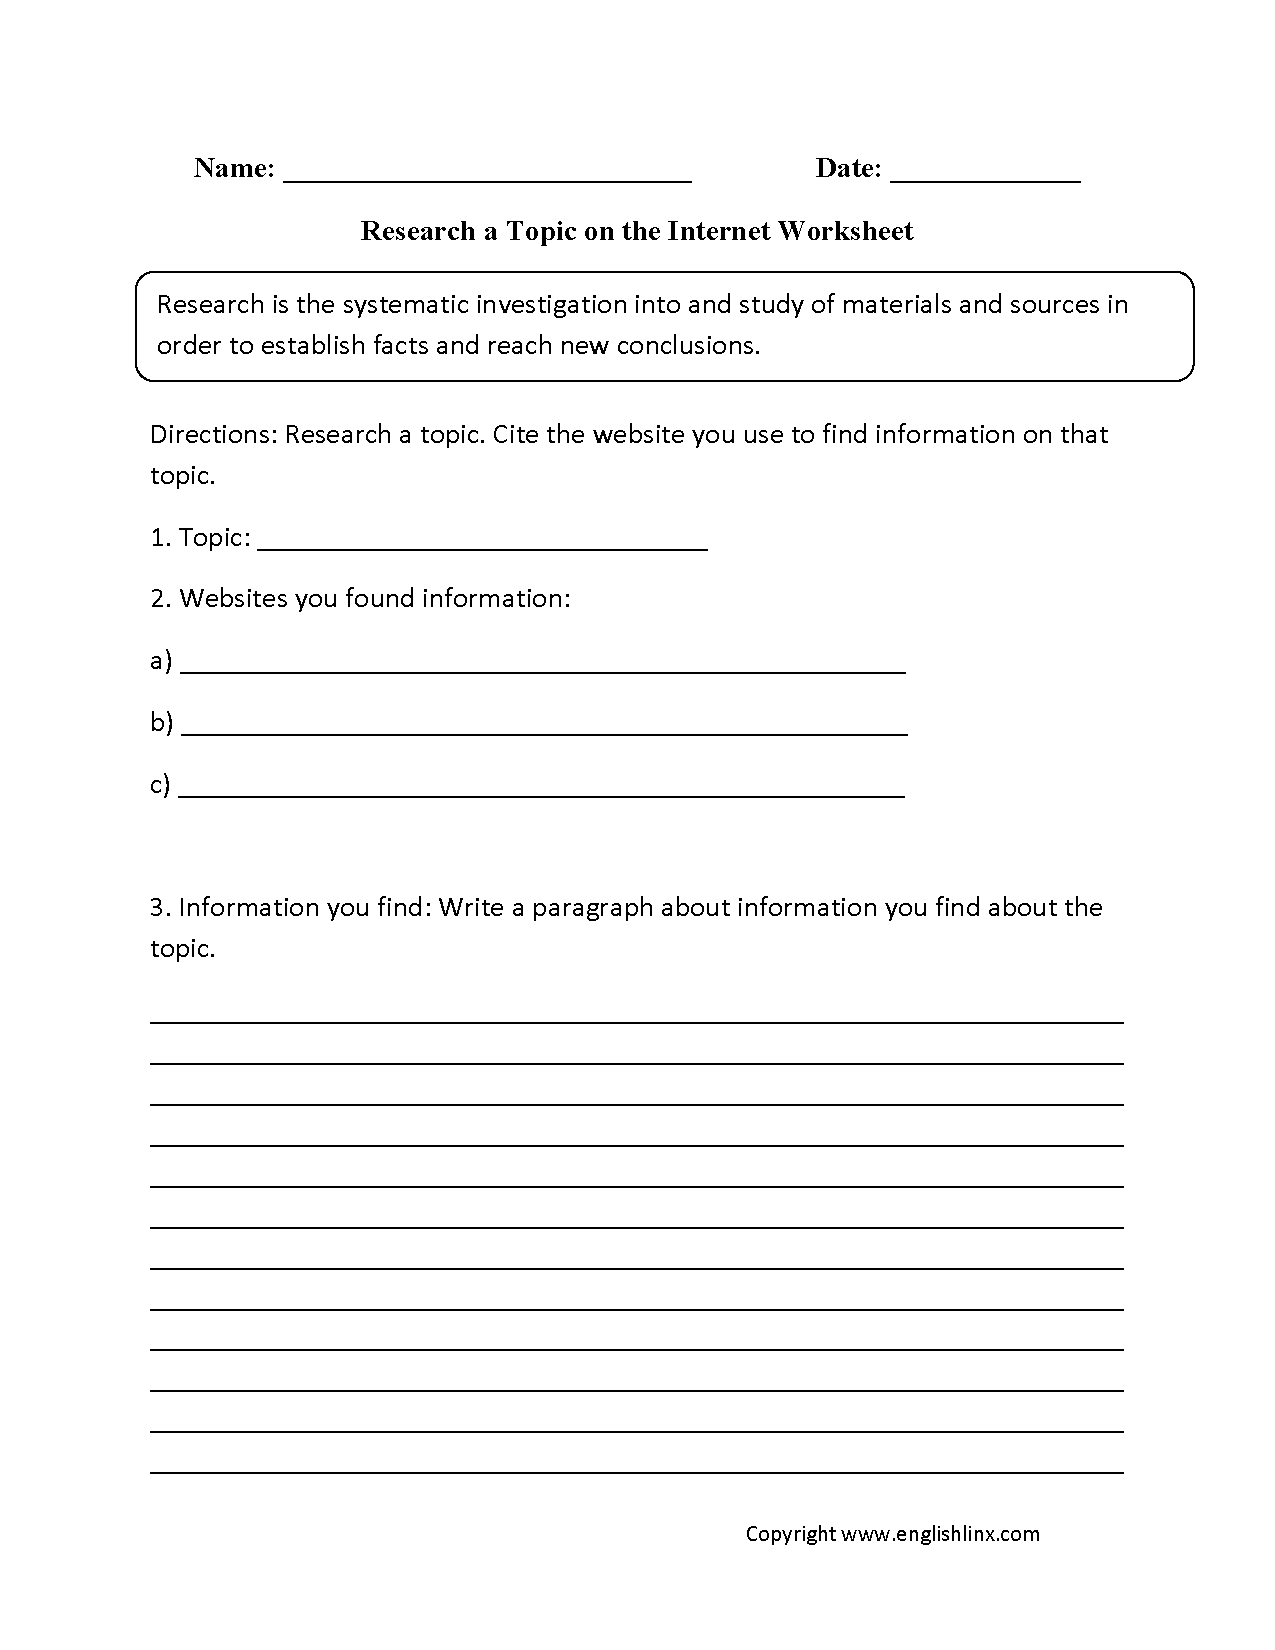 Aldiablosus  Sweet Englishlinxcom  Research Worksheets With Lovable On The Internet Worksheet With Charming Physics Vectors Worksheet Also Writing And Solving Inequalities Worksheet In Addition Identifying Main Idea And Supporting Details Worksheets And Leaf Identification Worksheet As Well As Factoring Algebraic Expressions Worksheets Additionally First Grade Free Printable Worksheets From Englishlinxcom With Aldiablosus  Lovable Englishlinxcom  Research Worksheets With Charming On The Internet Worksheet And Sweet Physics Vectors Worksheet Also Writing And Solving Inequalities Worksheet In Addition Identifying Main Idea And Supporting Details Worksheets From Englishlinxcom